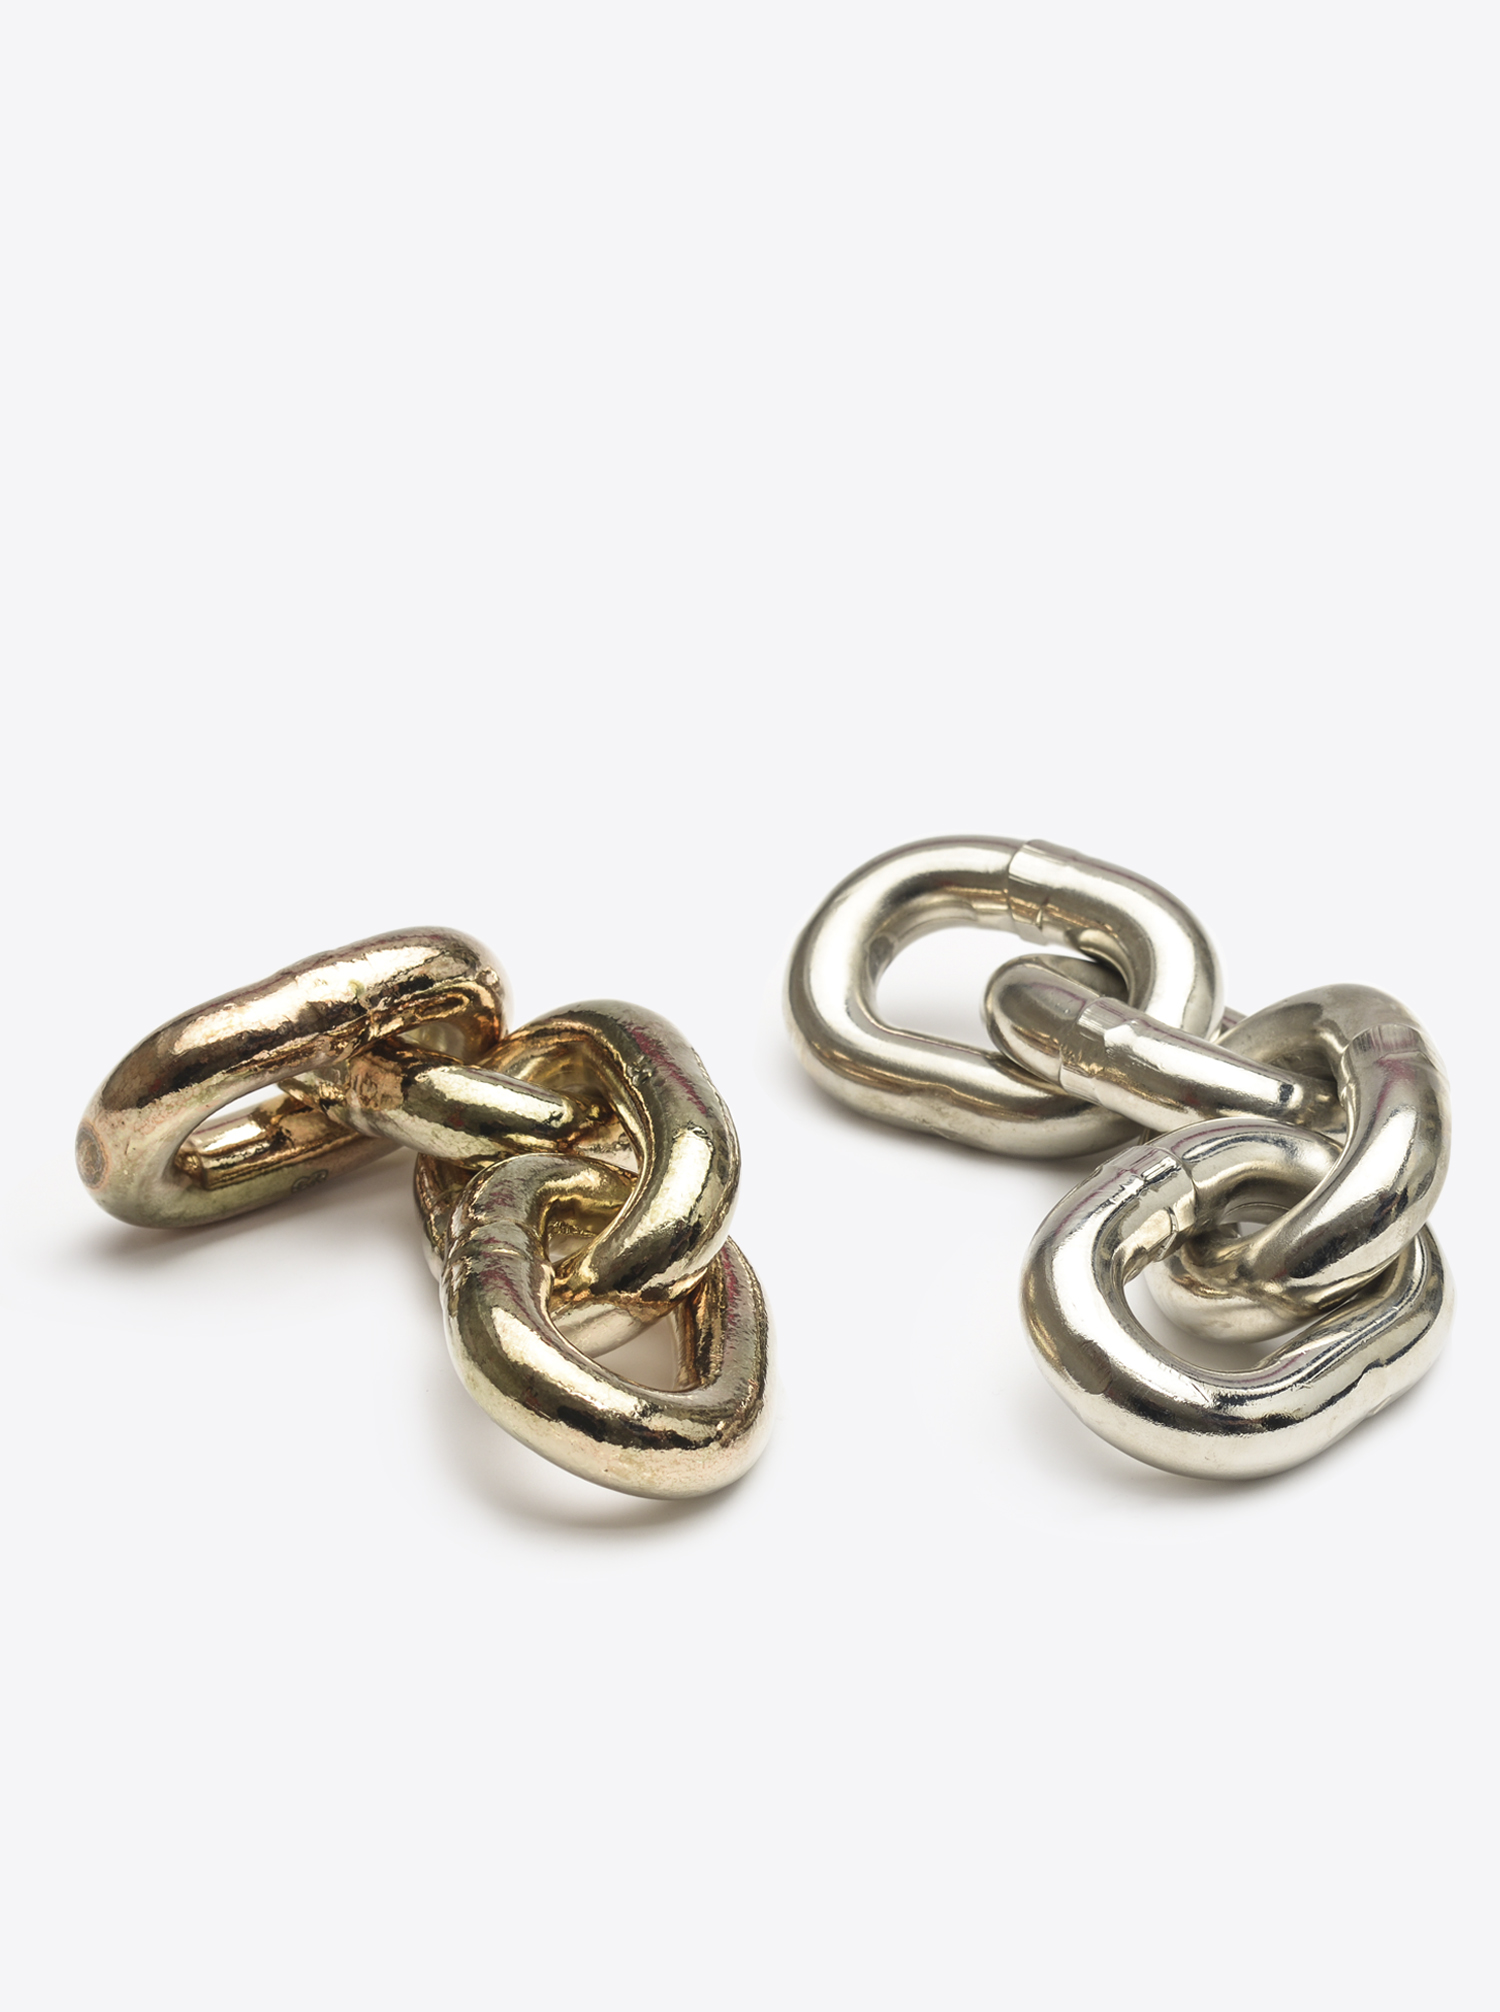 Paperweight Chain Iron nickel plated